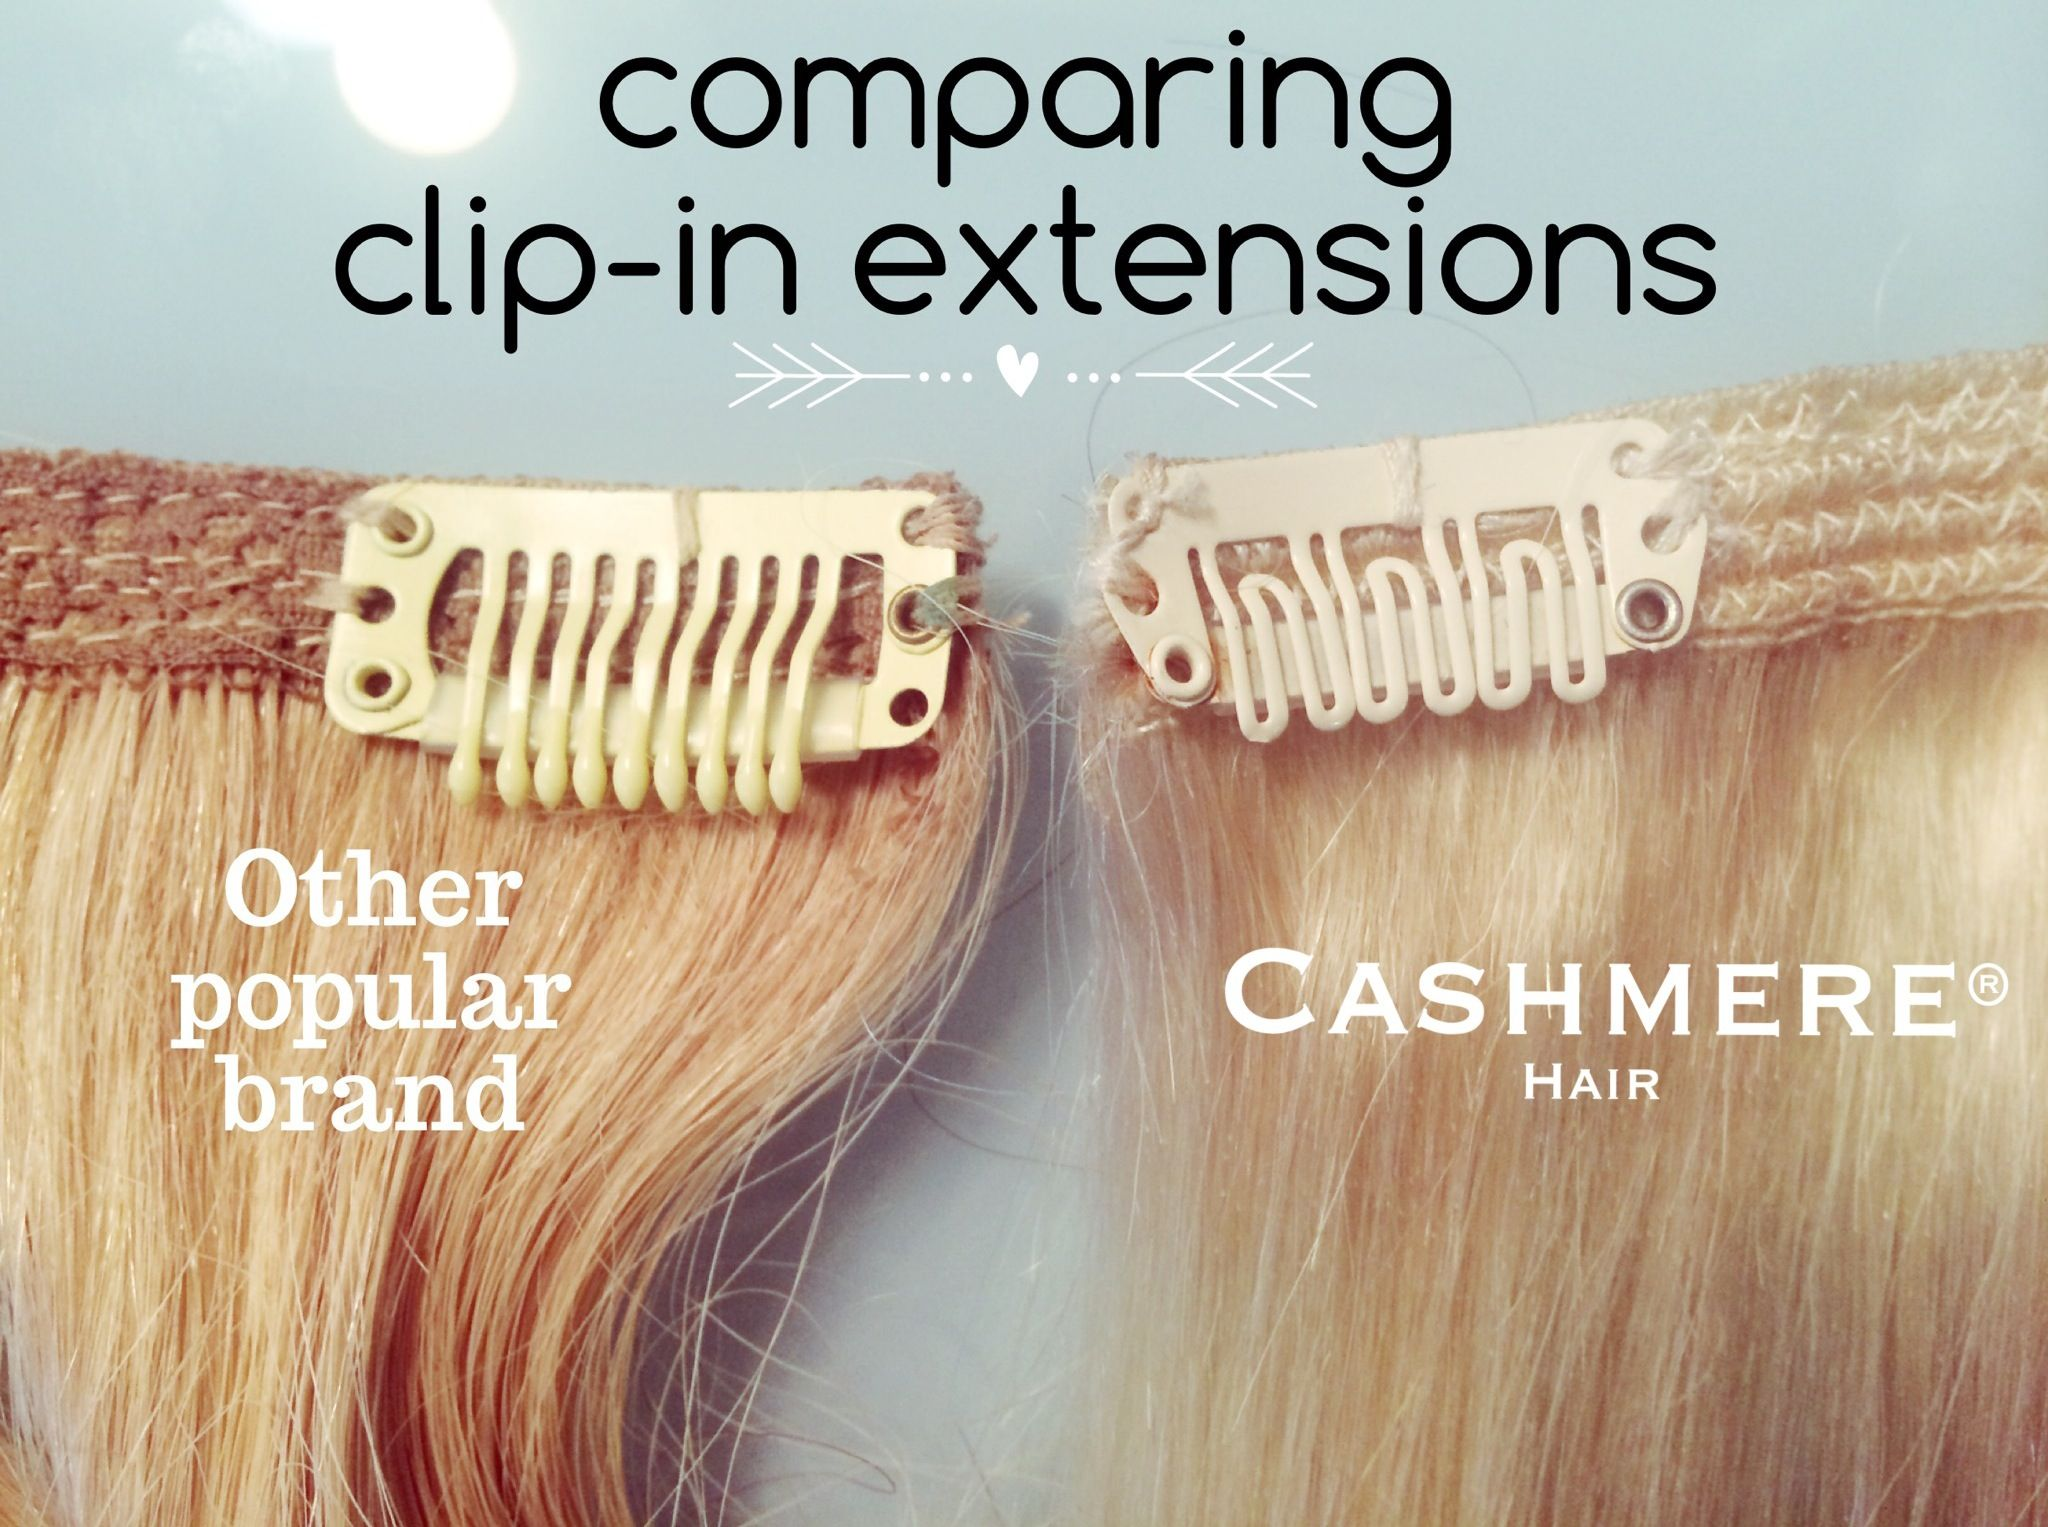 41 best wishlist hair extensions images on pinterest hair cashmere hair comparing clip in hair extension brands clip in pmusecretfo Gallery